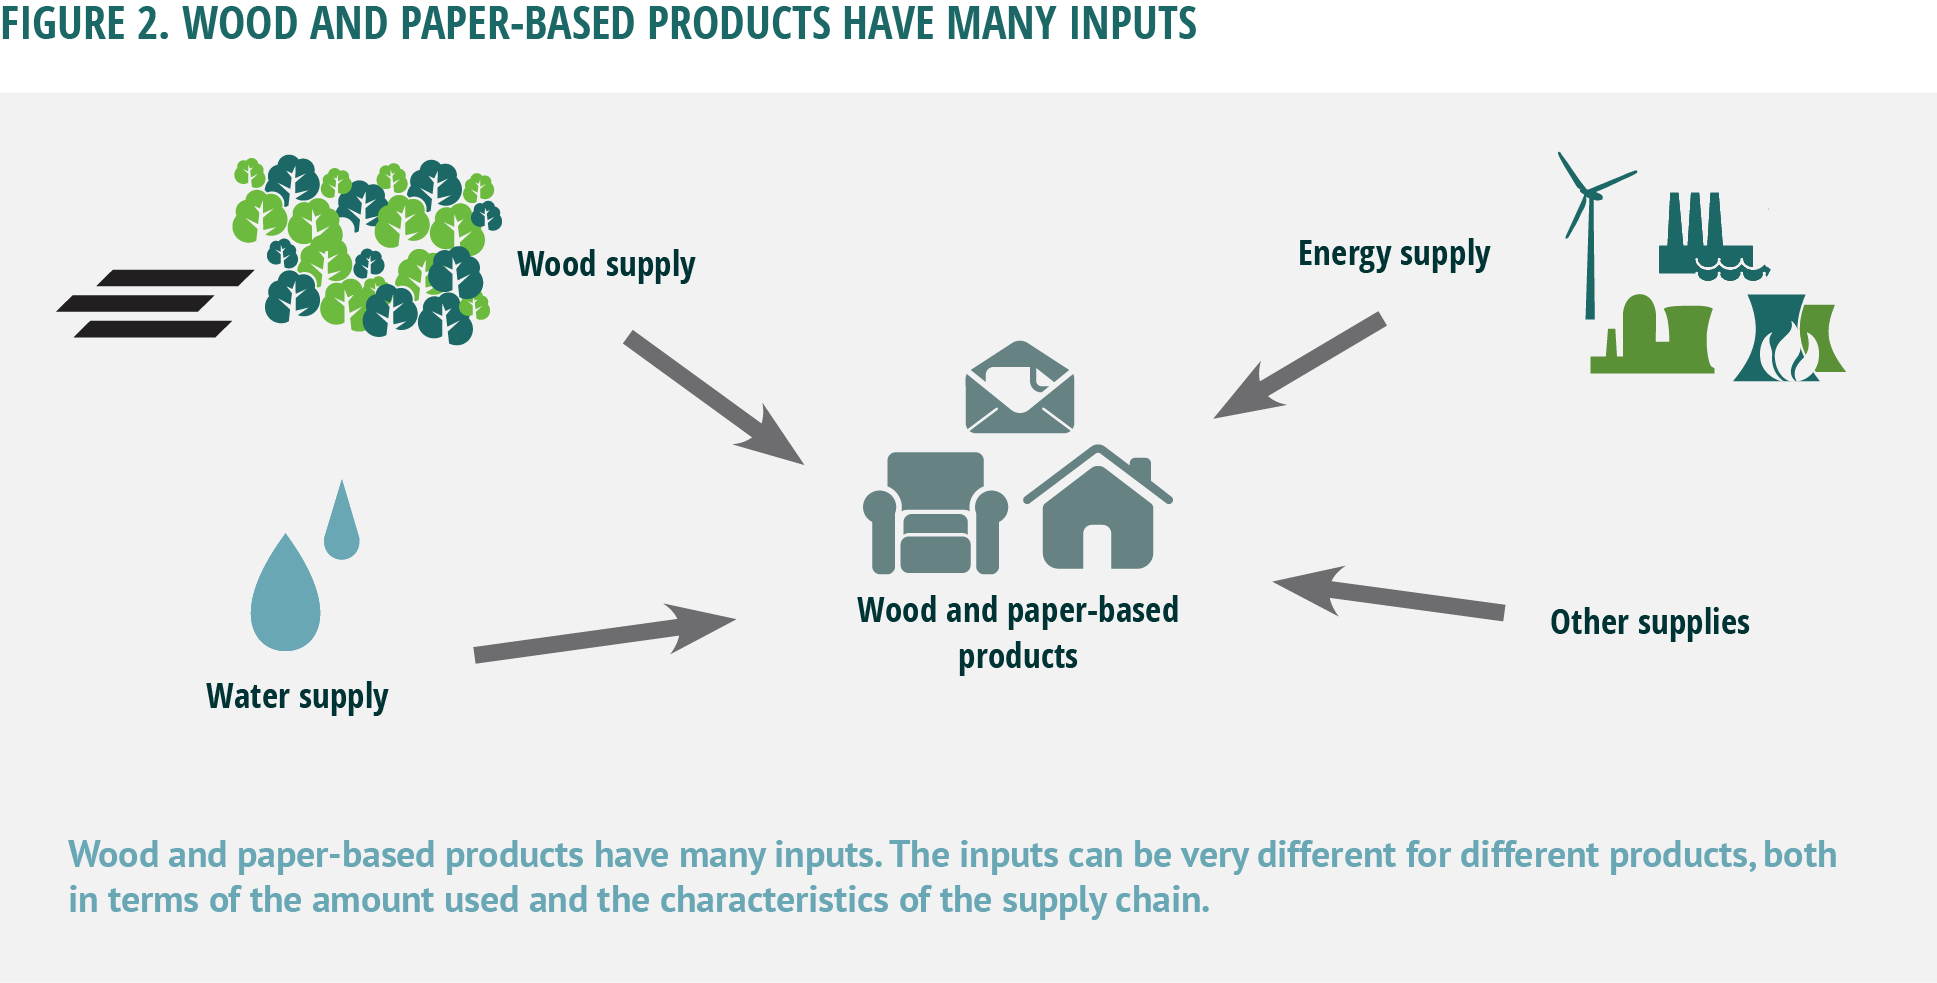 Wood and paper-based products have many inputs. The inputs can be very different for different products, both in terms of the amount used and the characteristics of the supply chain.